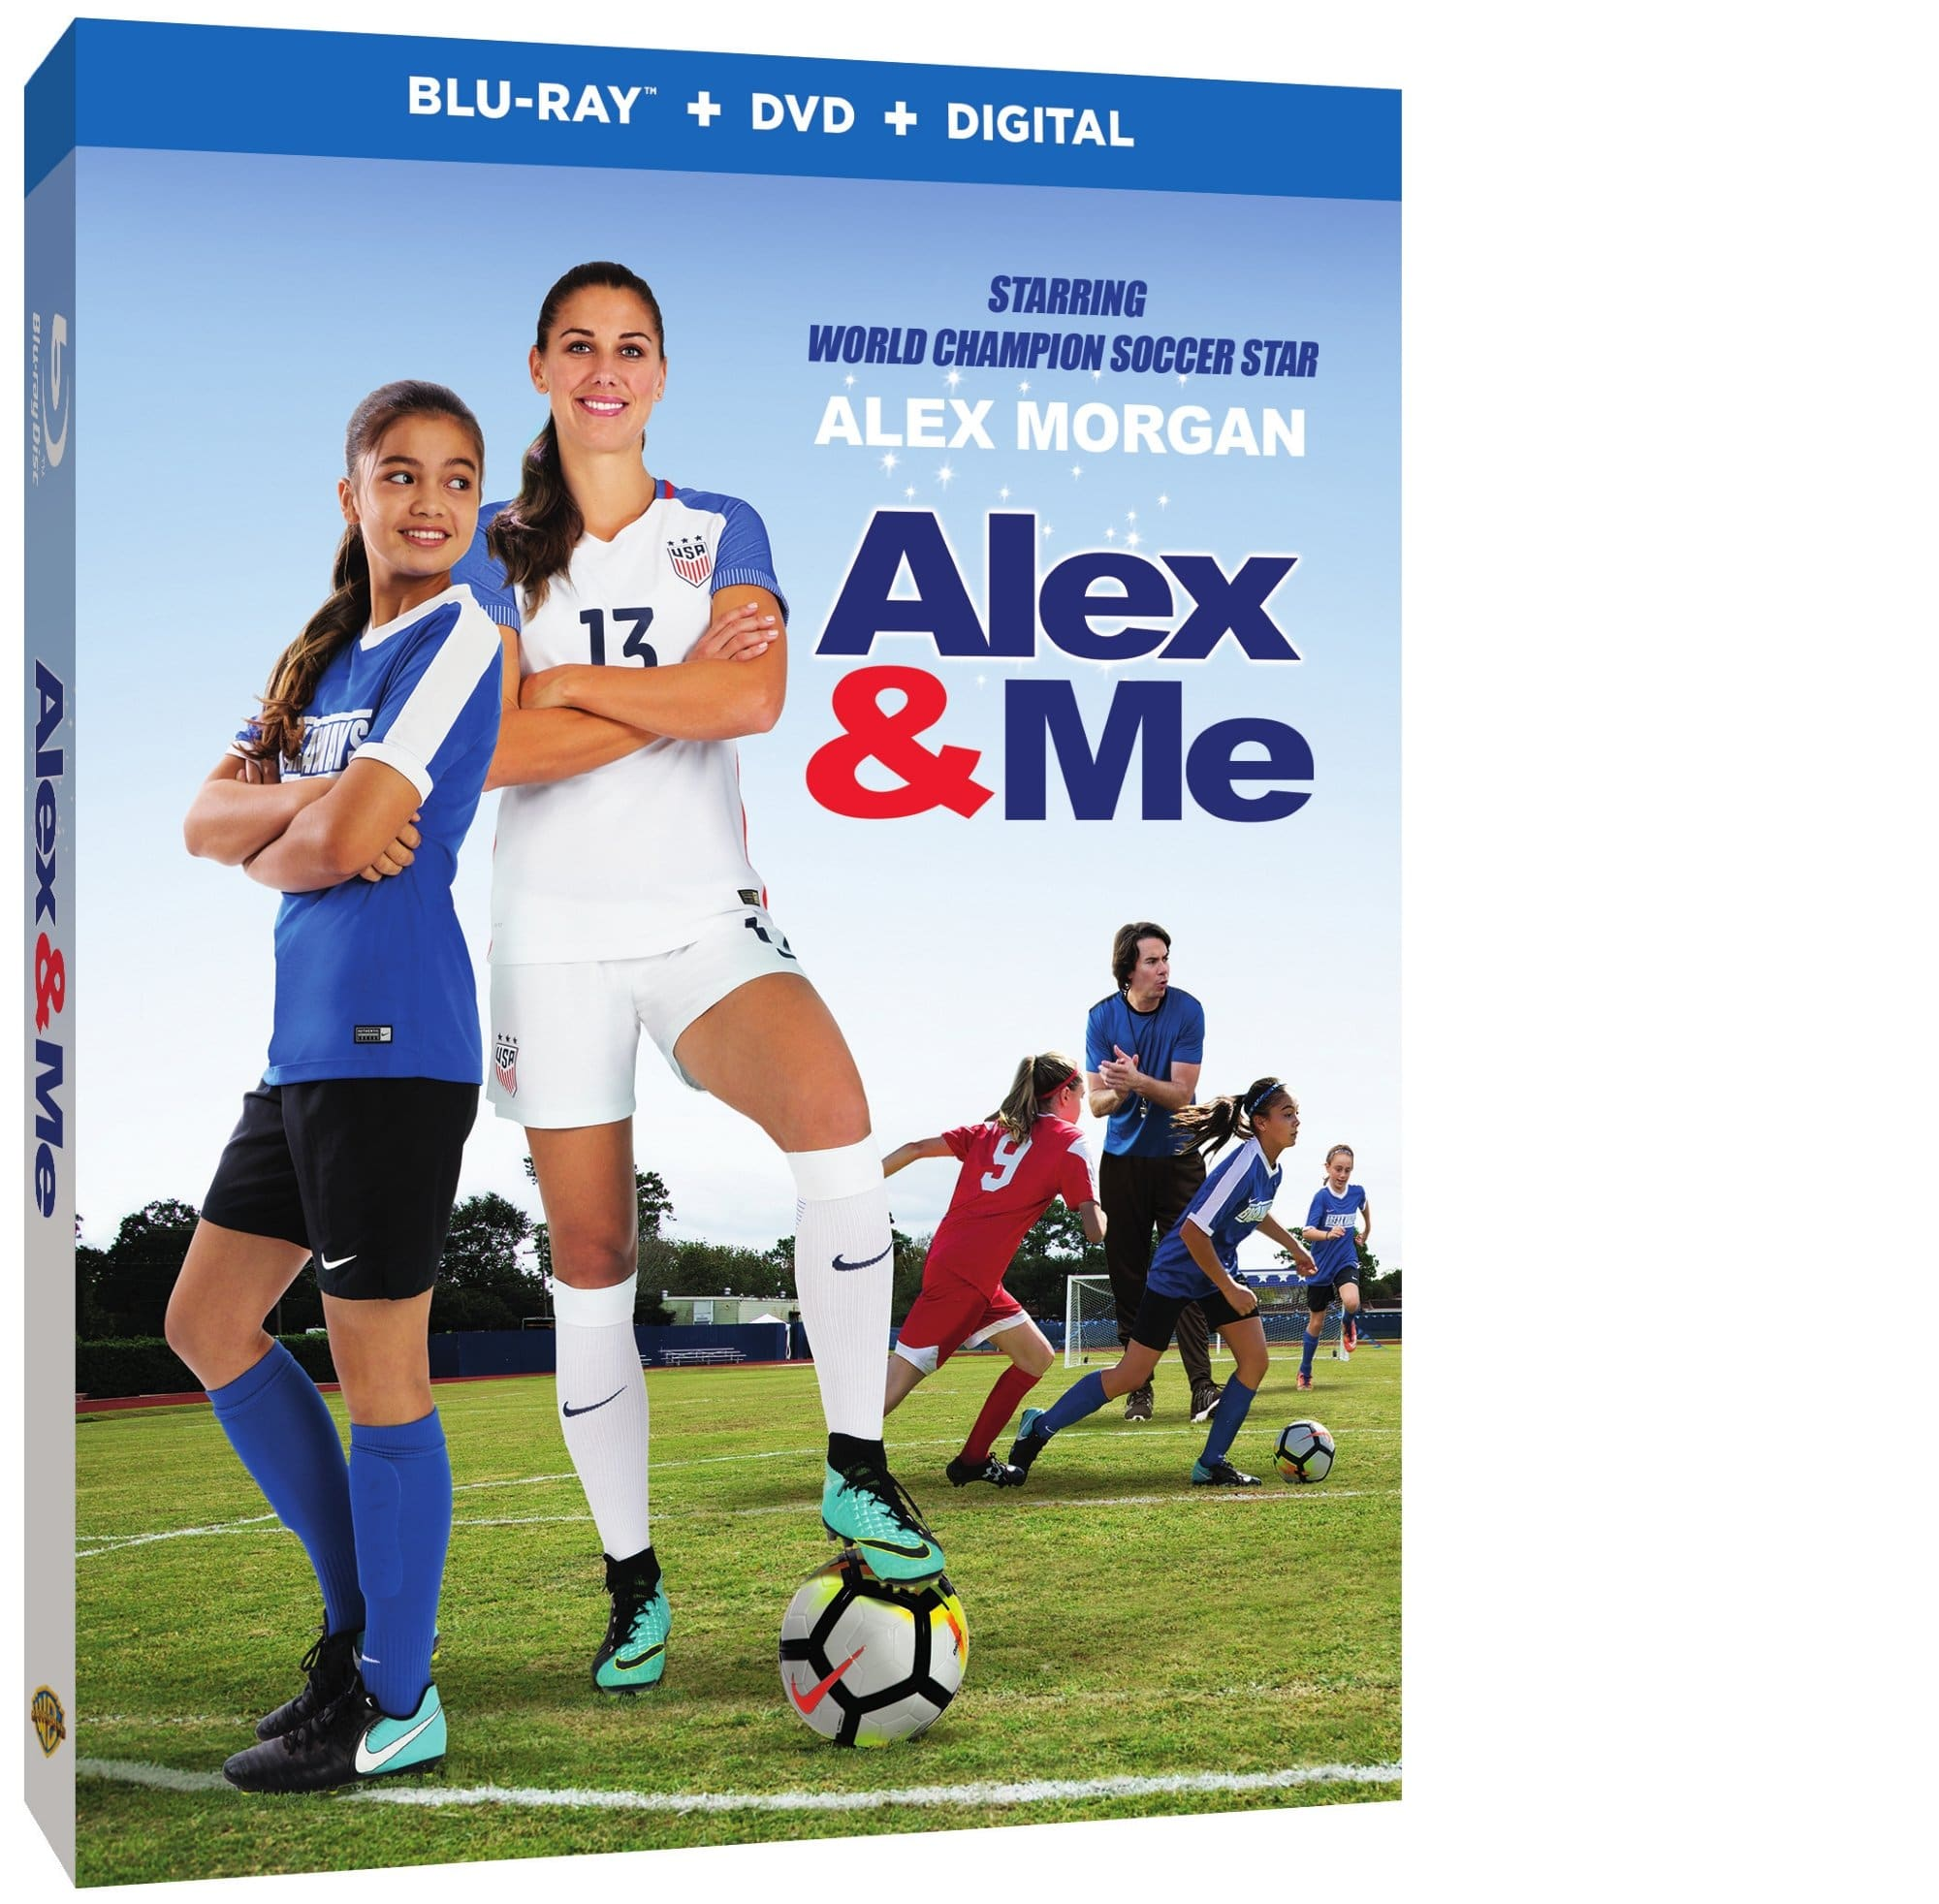 Alex & Me. Teenager Reagan Willis has one dream, to play soccer like her hero, Alex Morgan. Her bedroom is a shrine to all things Alex, including a life-size poster of the Olympic gold medalist. Yet in the Willis house, Reagan lives in the shadow of her prep football superstar brother, Logan.